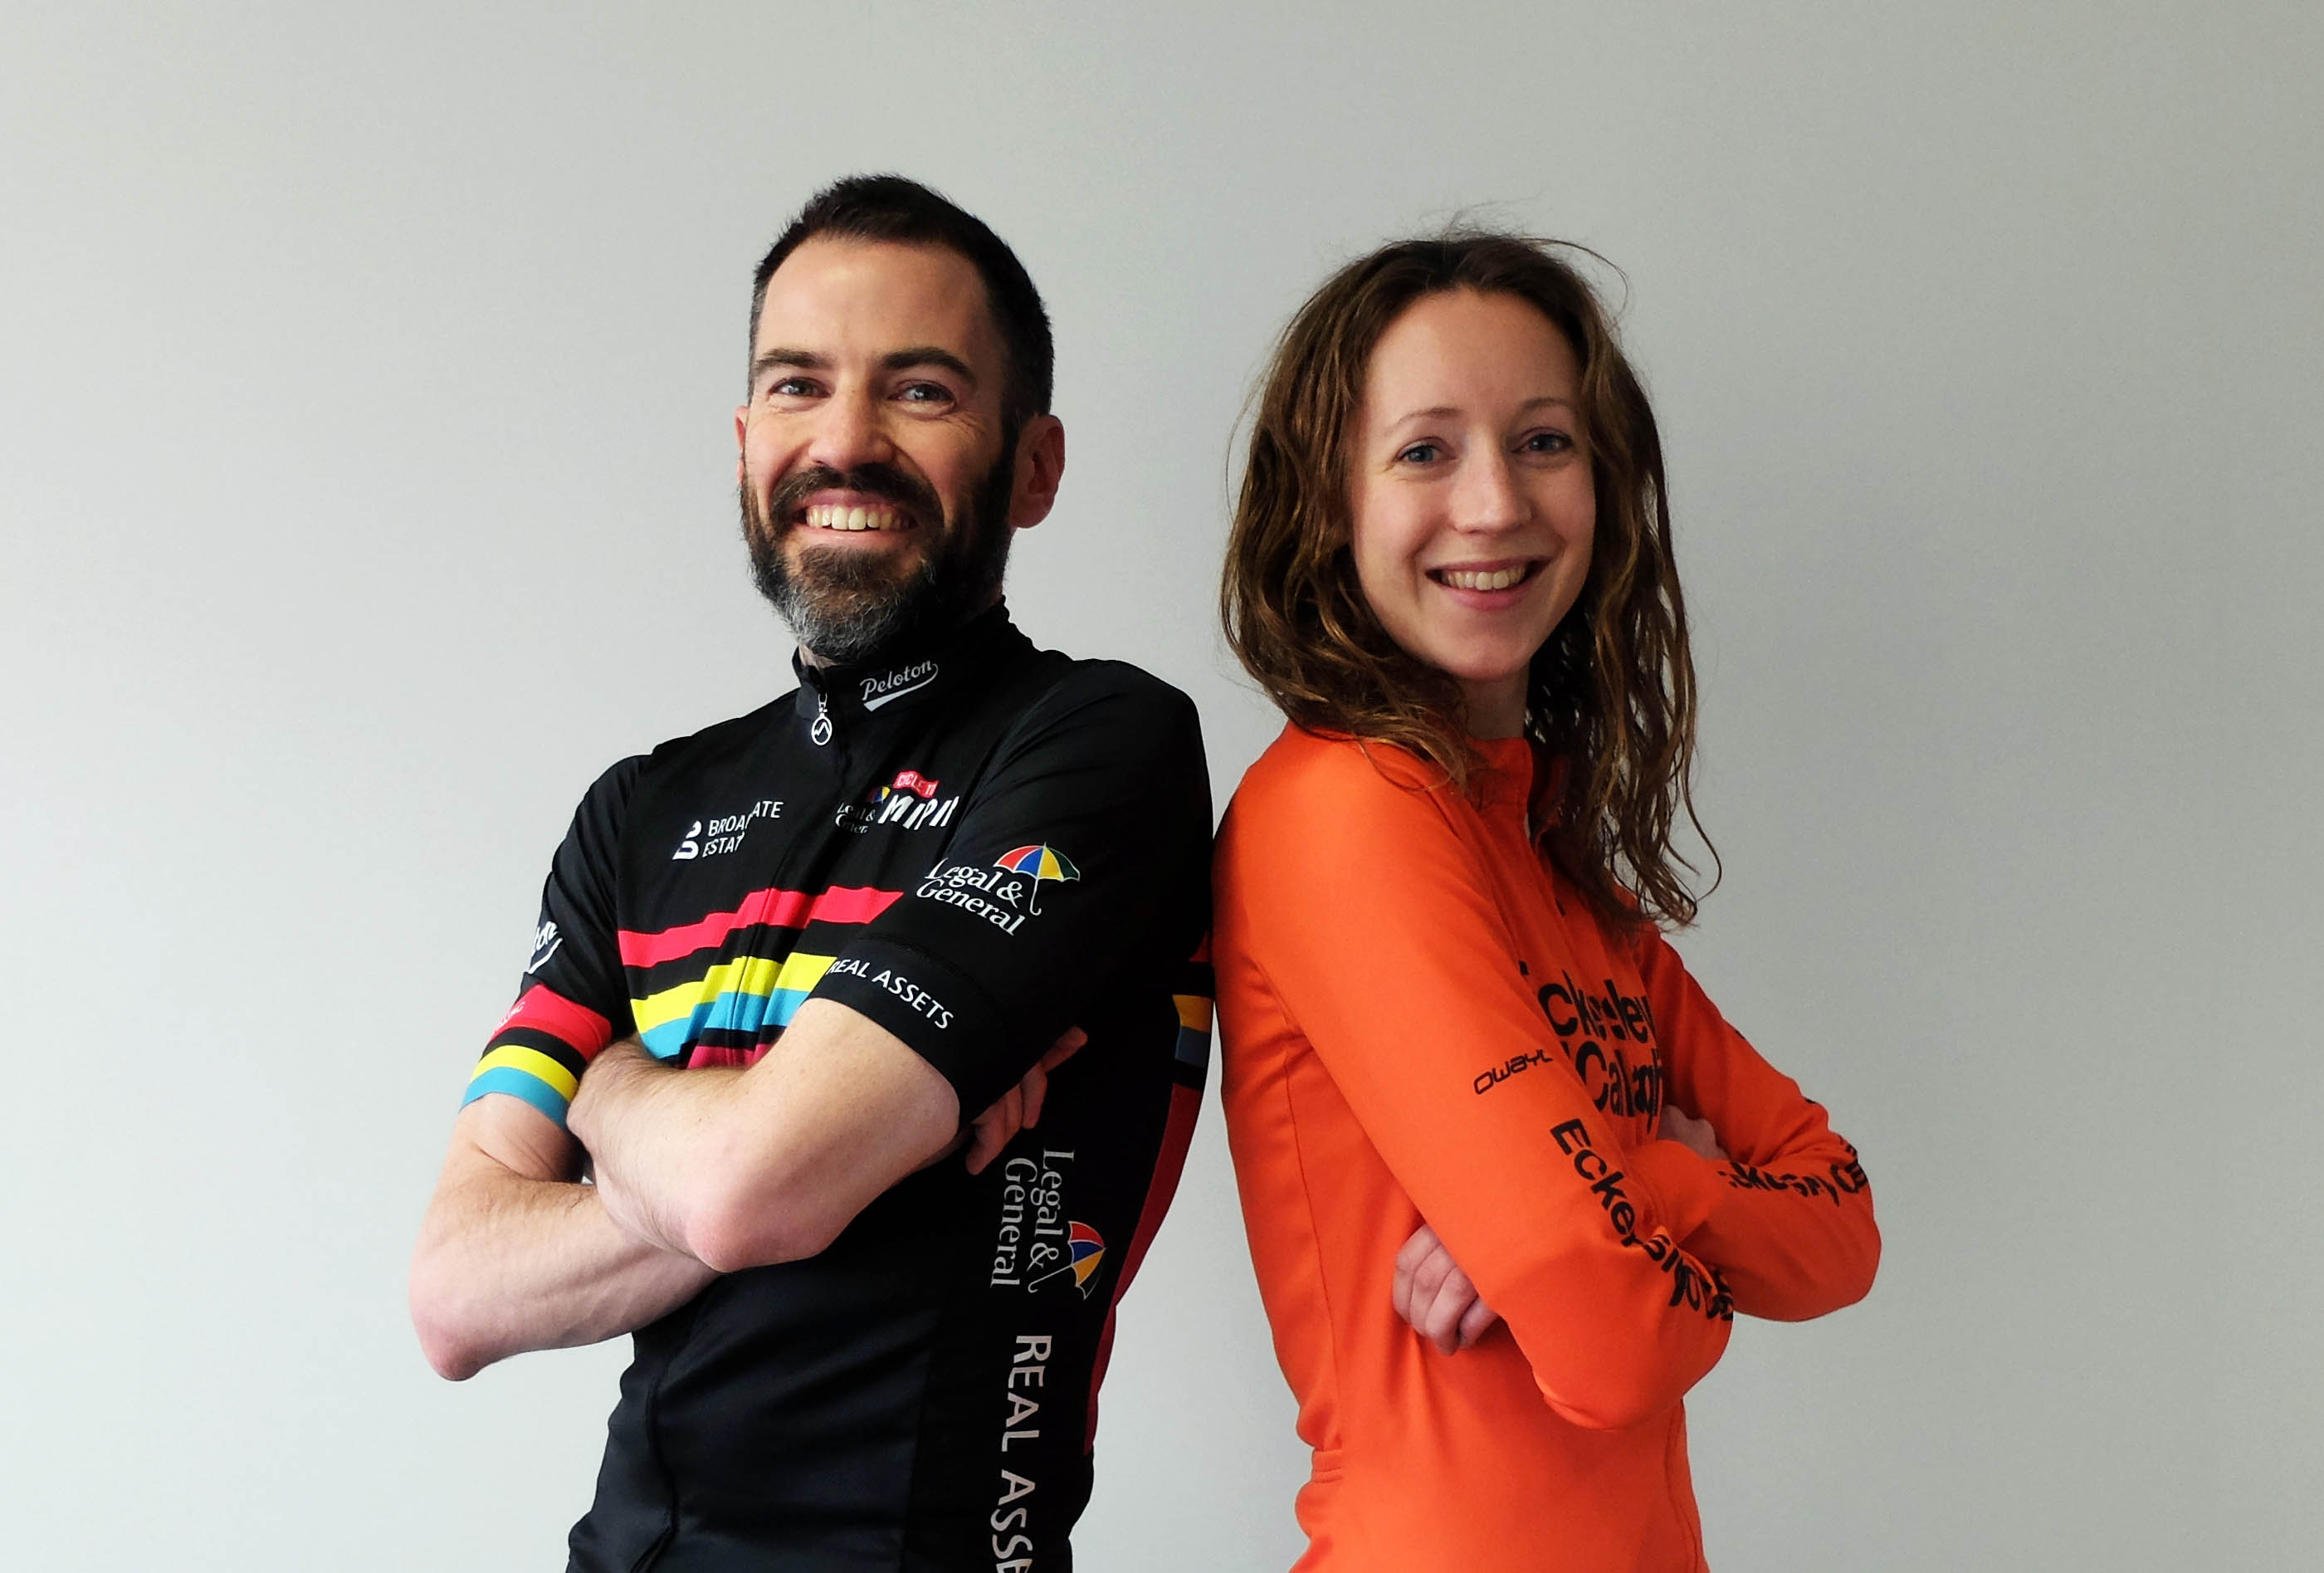 Damian_and_Caroline_Ready_to_Cycle_C